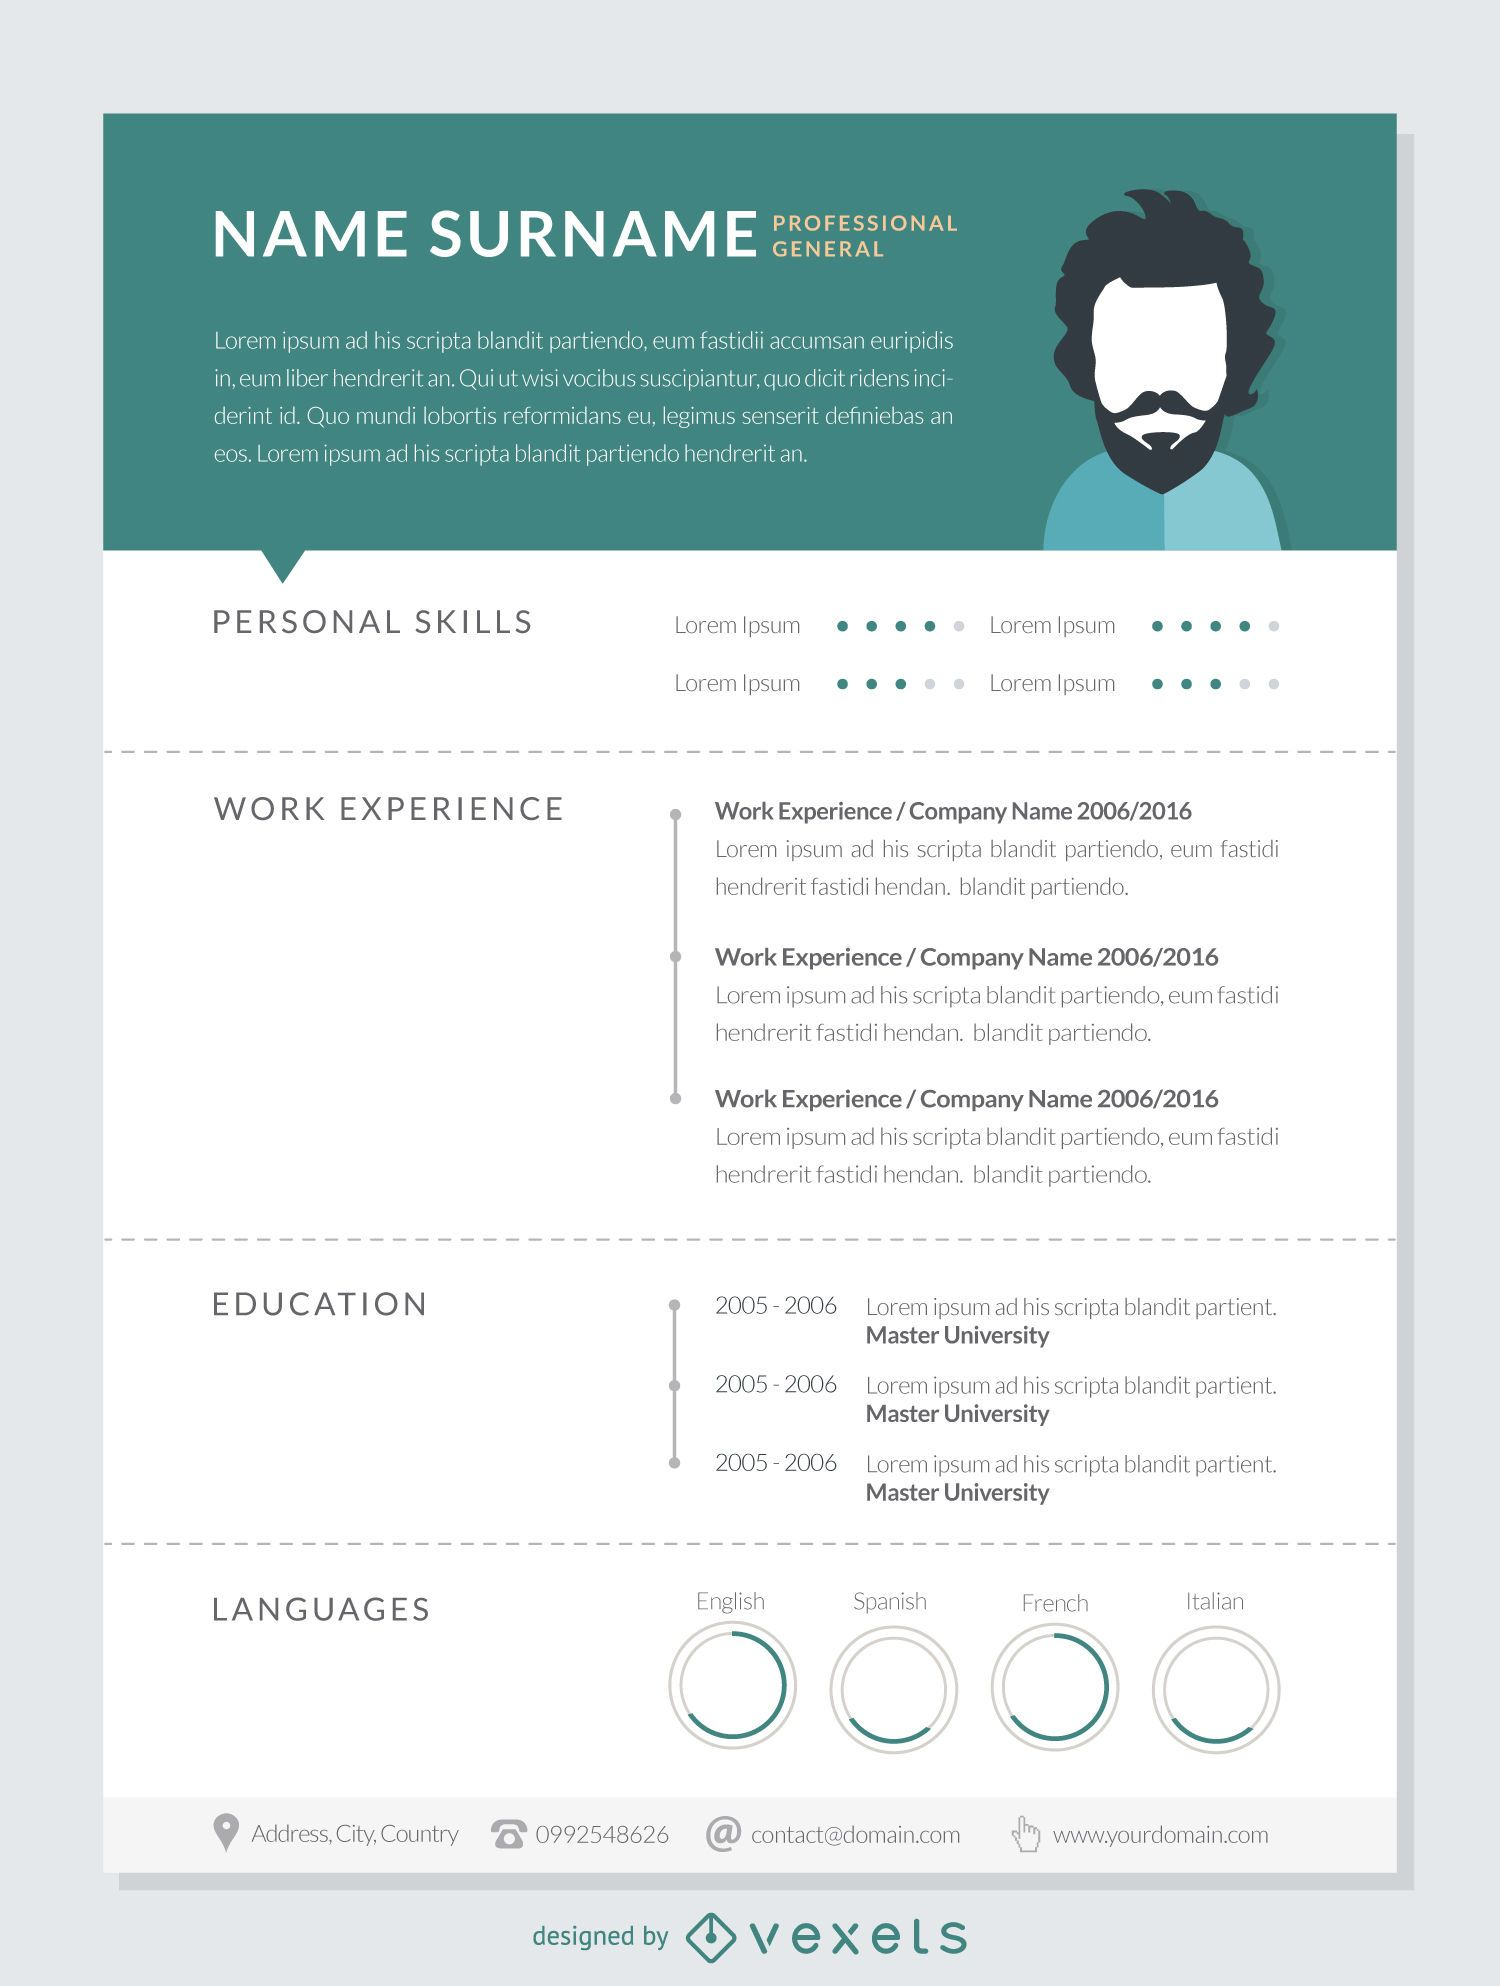 professional resume mockup template vector download